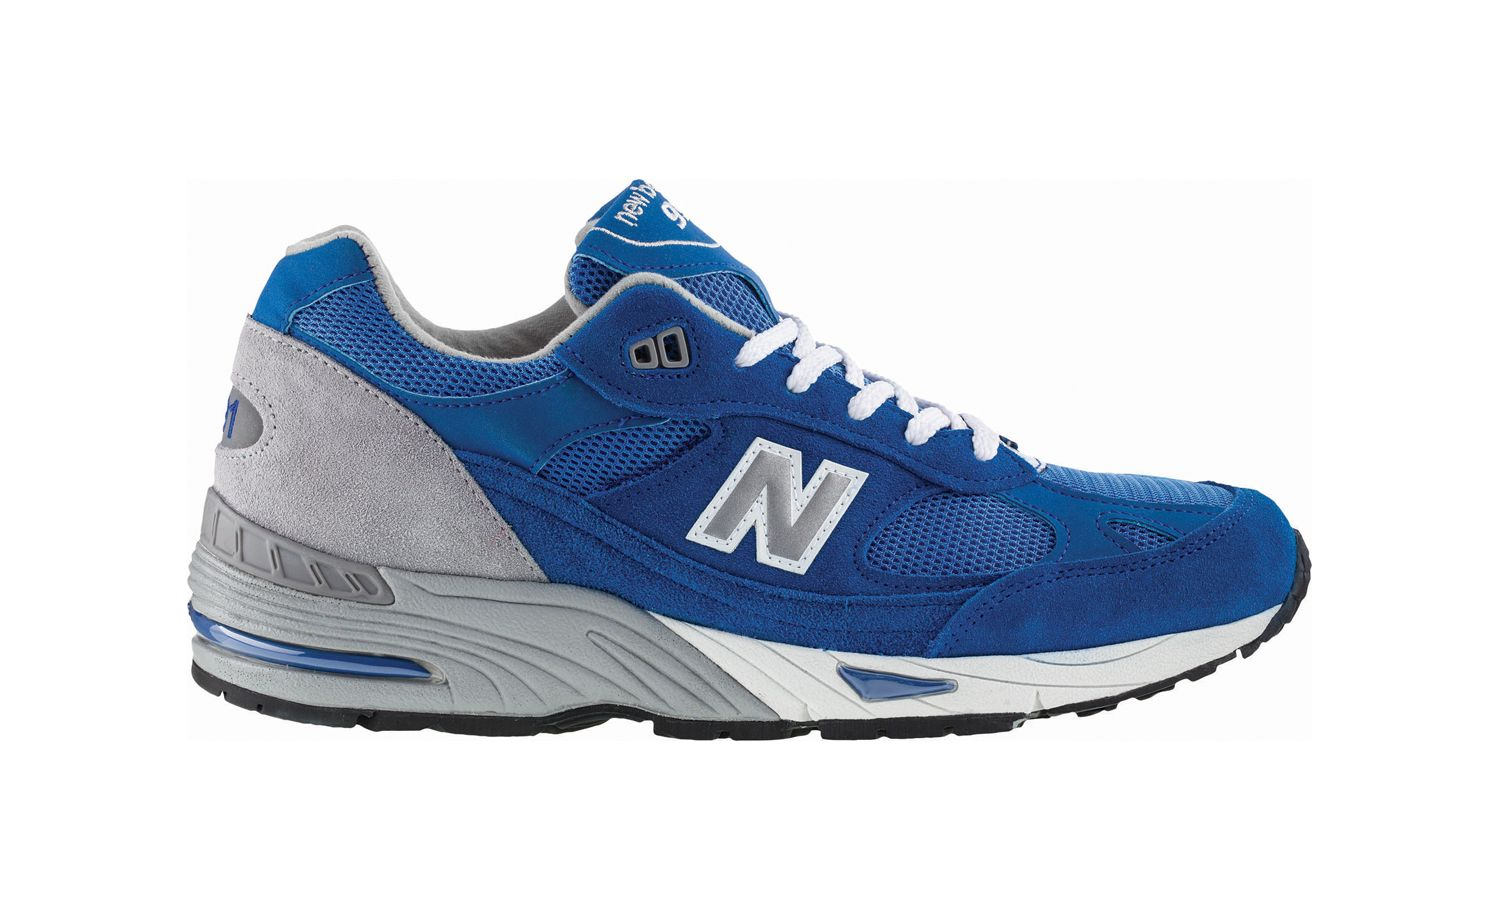 New Balance 991 Made in the USA